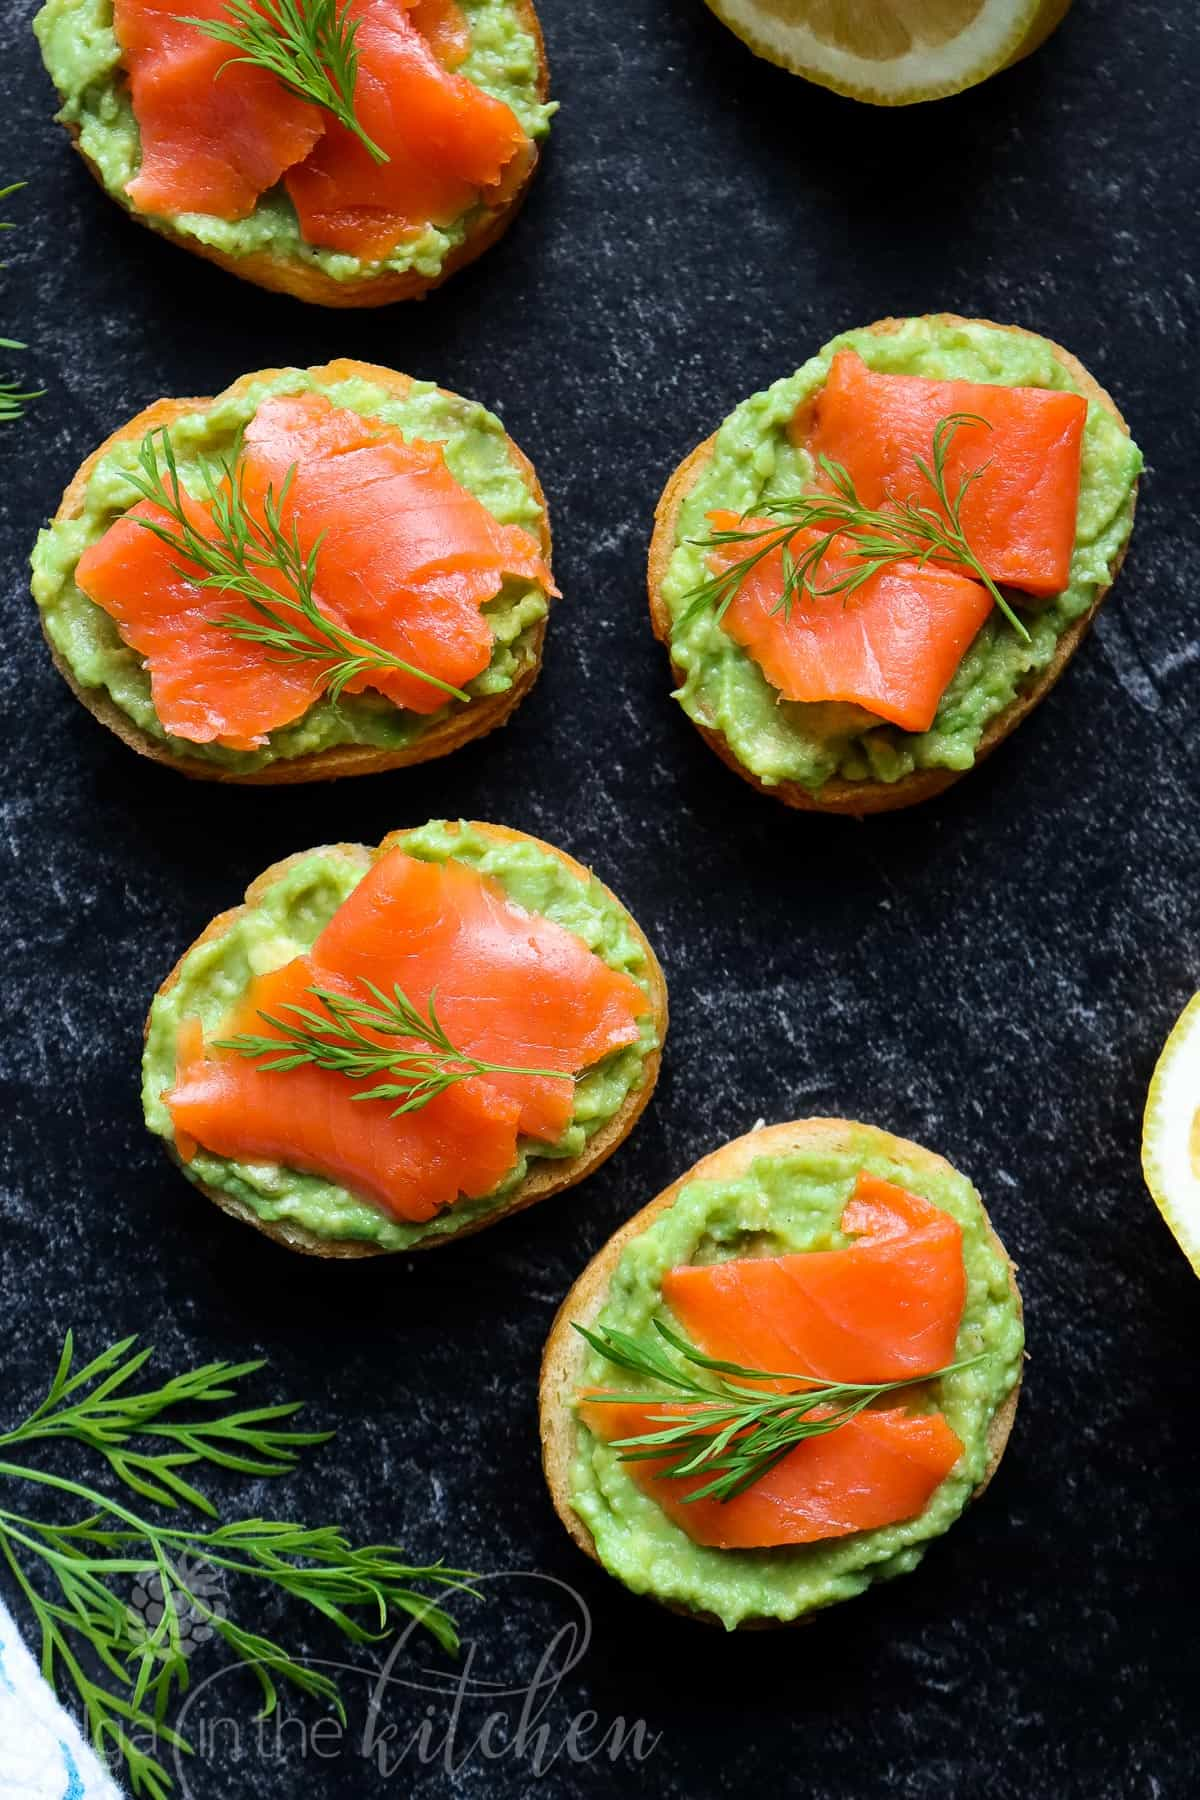 These Salmon Avocado Sandwiches are super easy, healthy and the perfect appetizer to serve at your next party or enjoy as a delicious breakfast alternative. #appetizer #sandwich #olgainthekitchen #canapes #avocado #salmon #healthy #breakfast